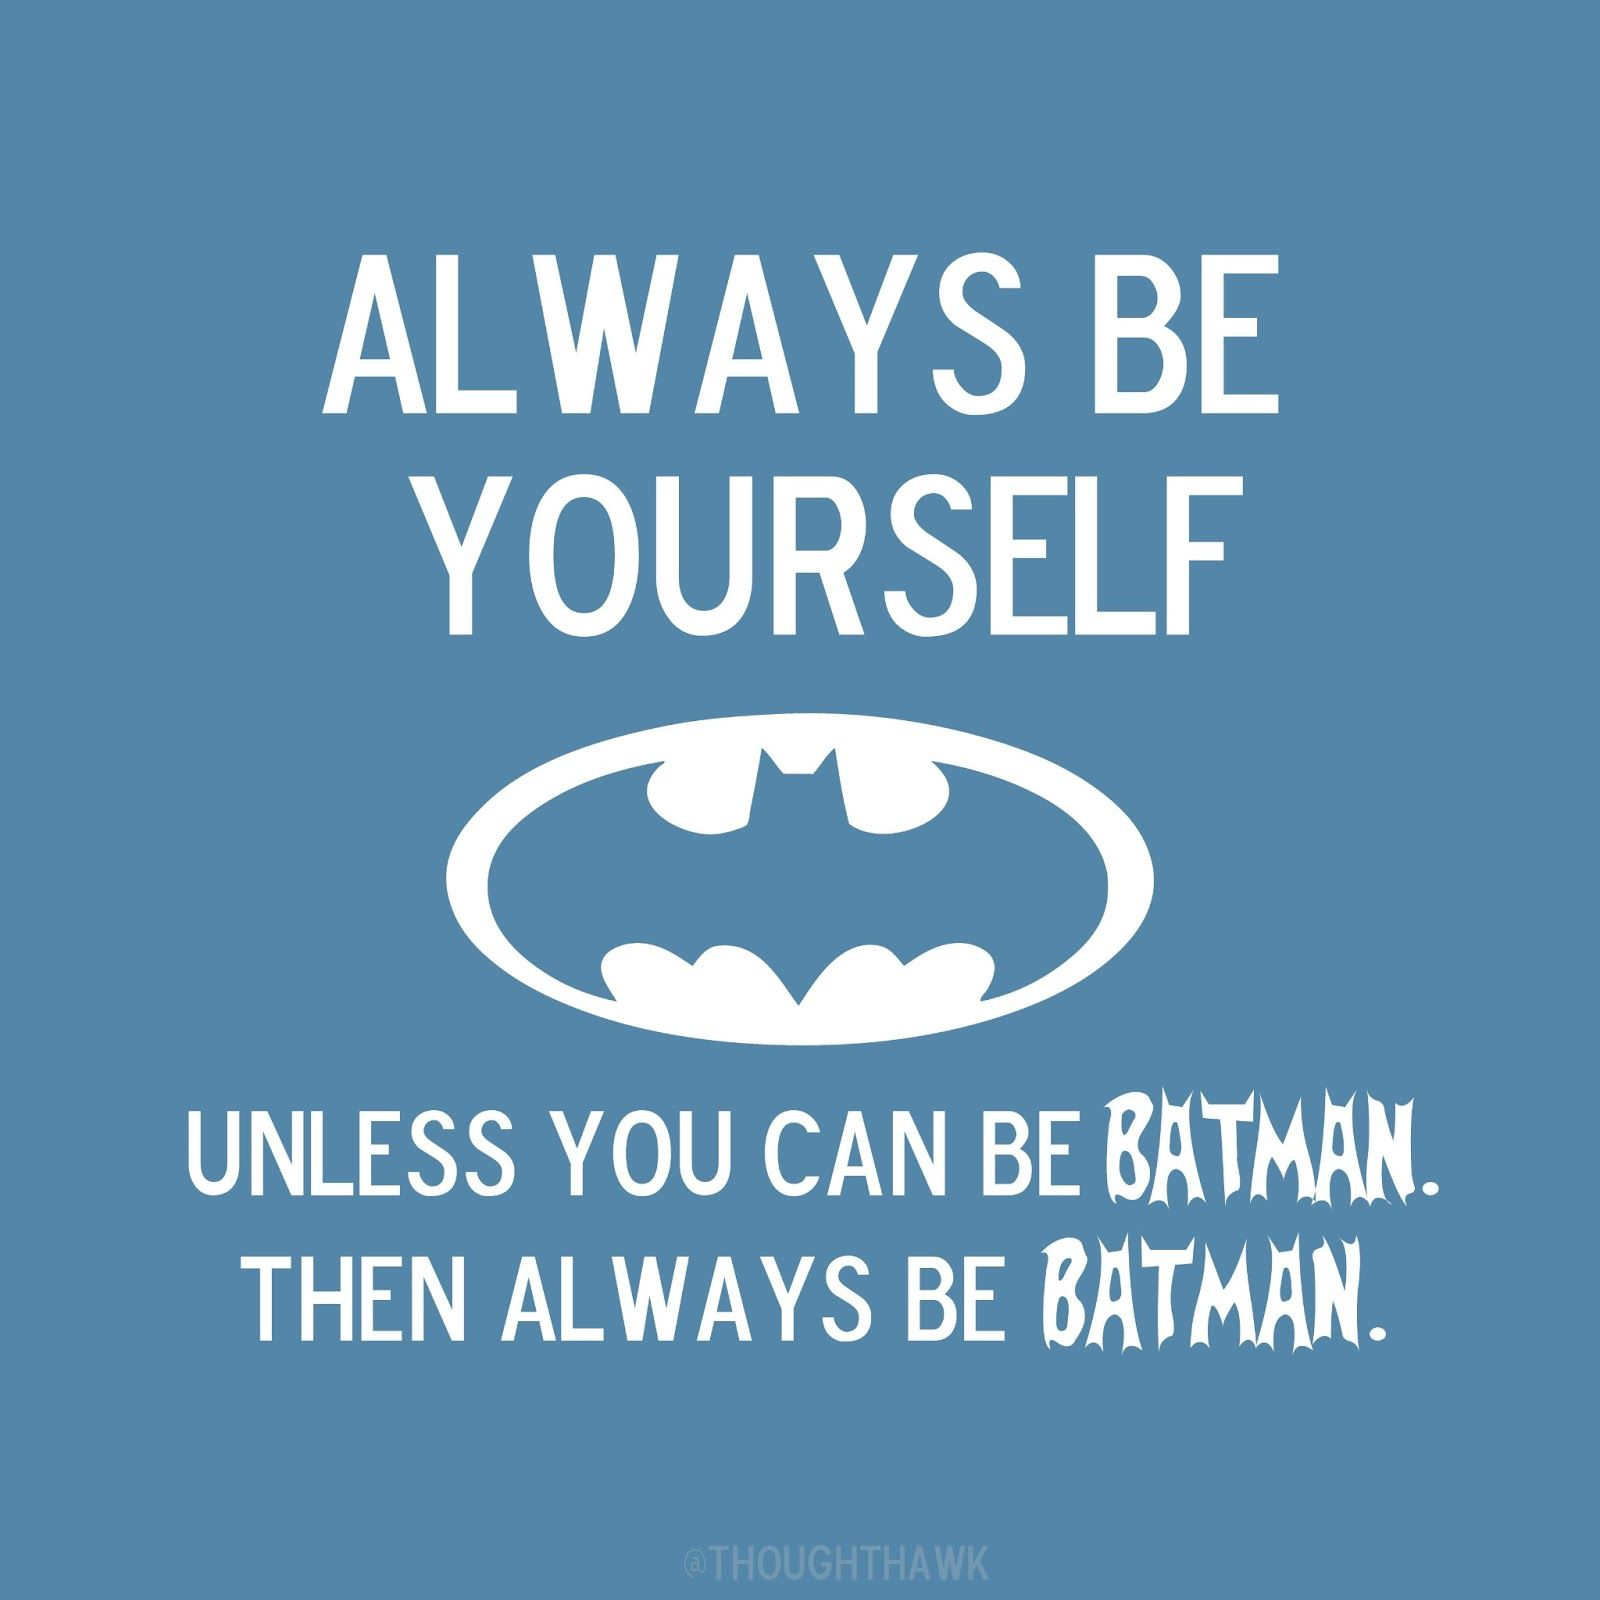 I Wish I Could Be Batman Funny Quotes Quotes For Kids Mom Humor